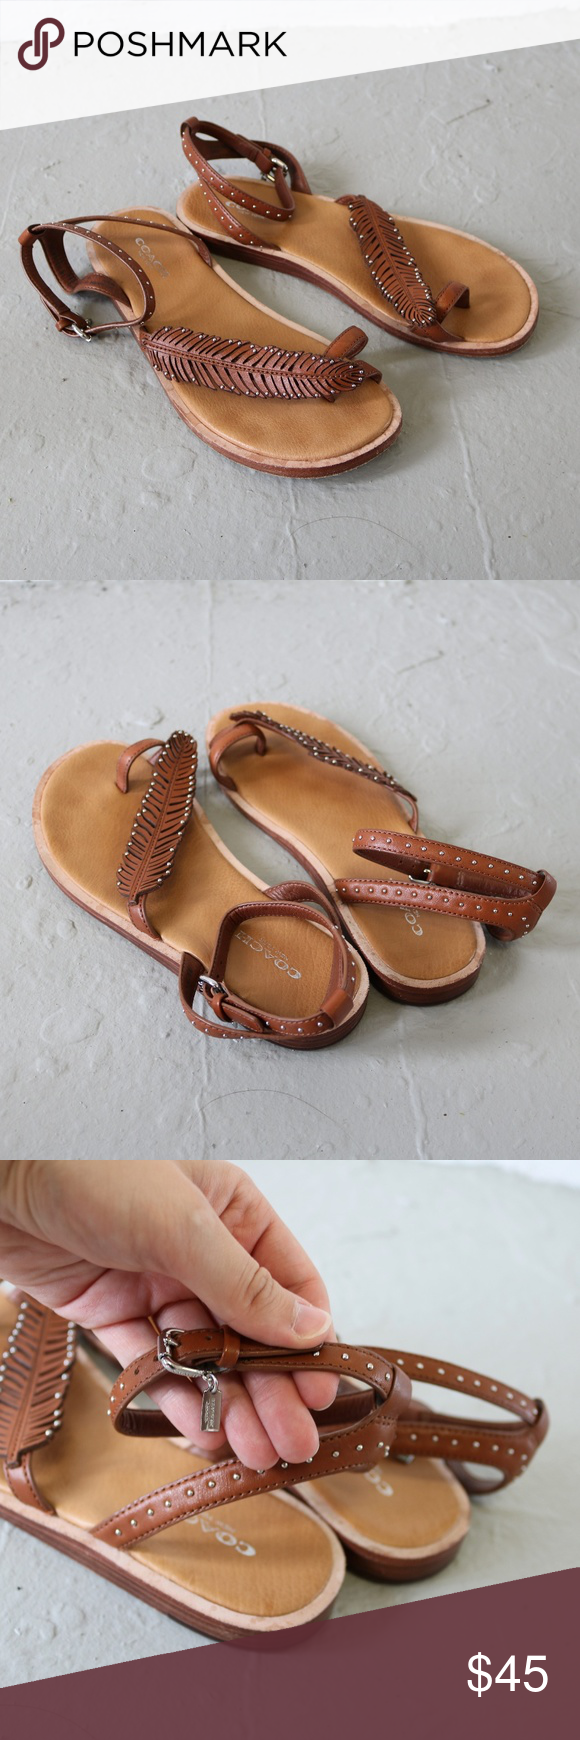 59696be8745ce5 Coach Beach Feather Sandal in Brown Saddle Size 6 adorable sandals with  feather motif and studs for the summer! Jennifer Lawrence was photographed  wearing ...